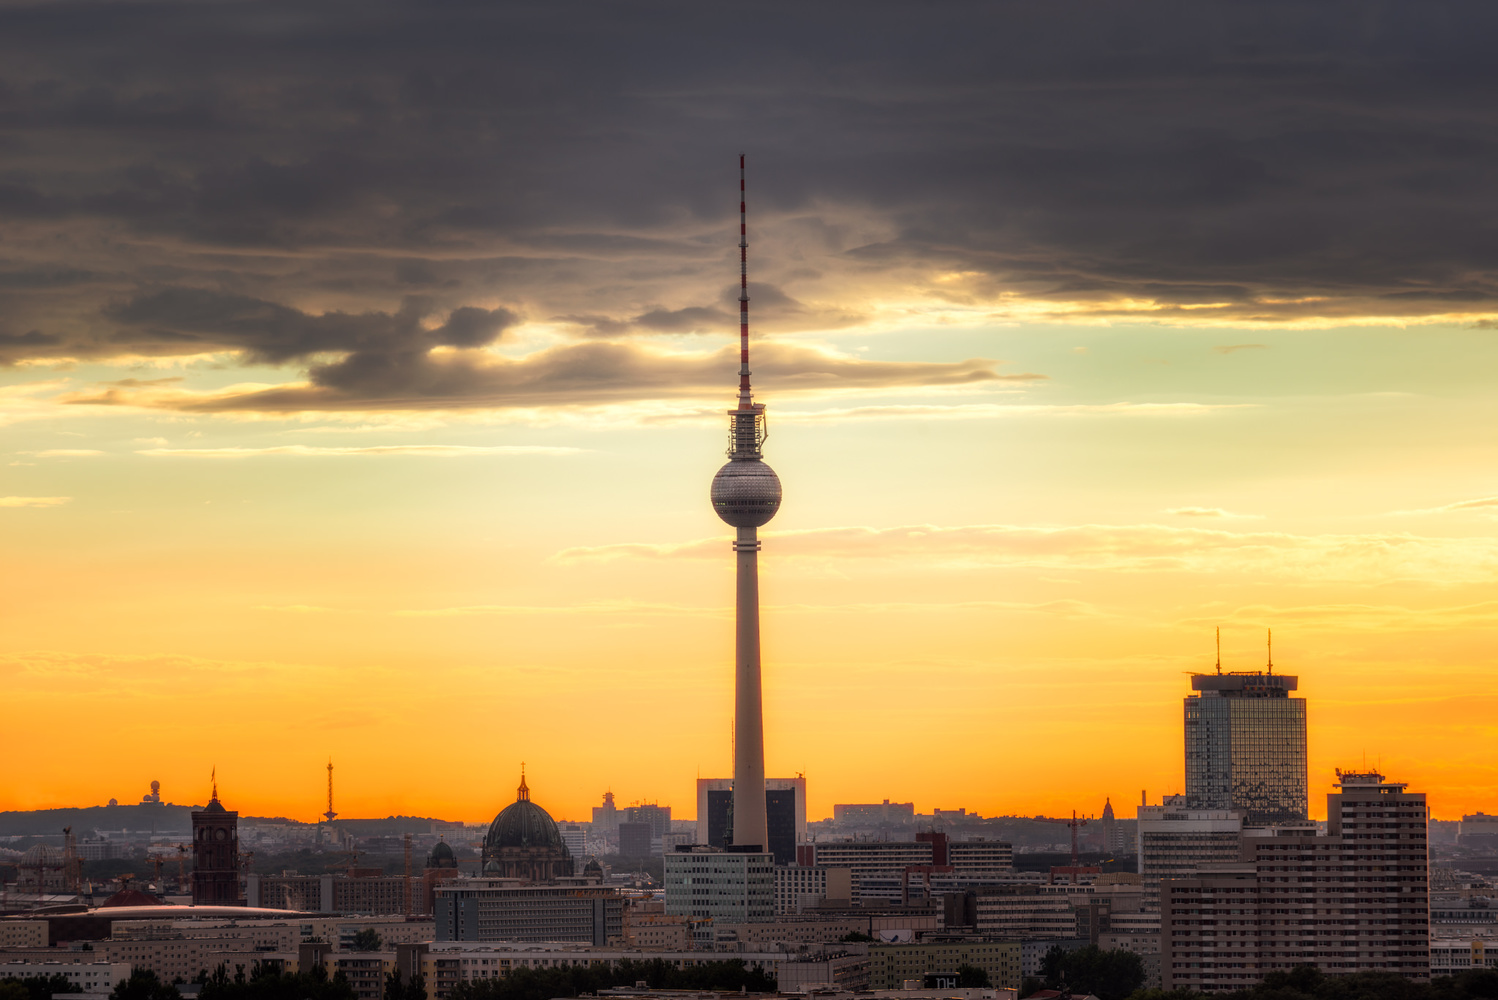 The TV Tower of Berlin from Storkower Street | Germany by Nico Trinkhaus